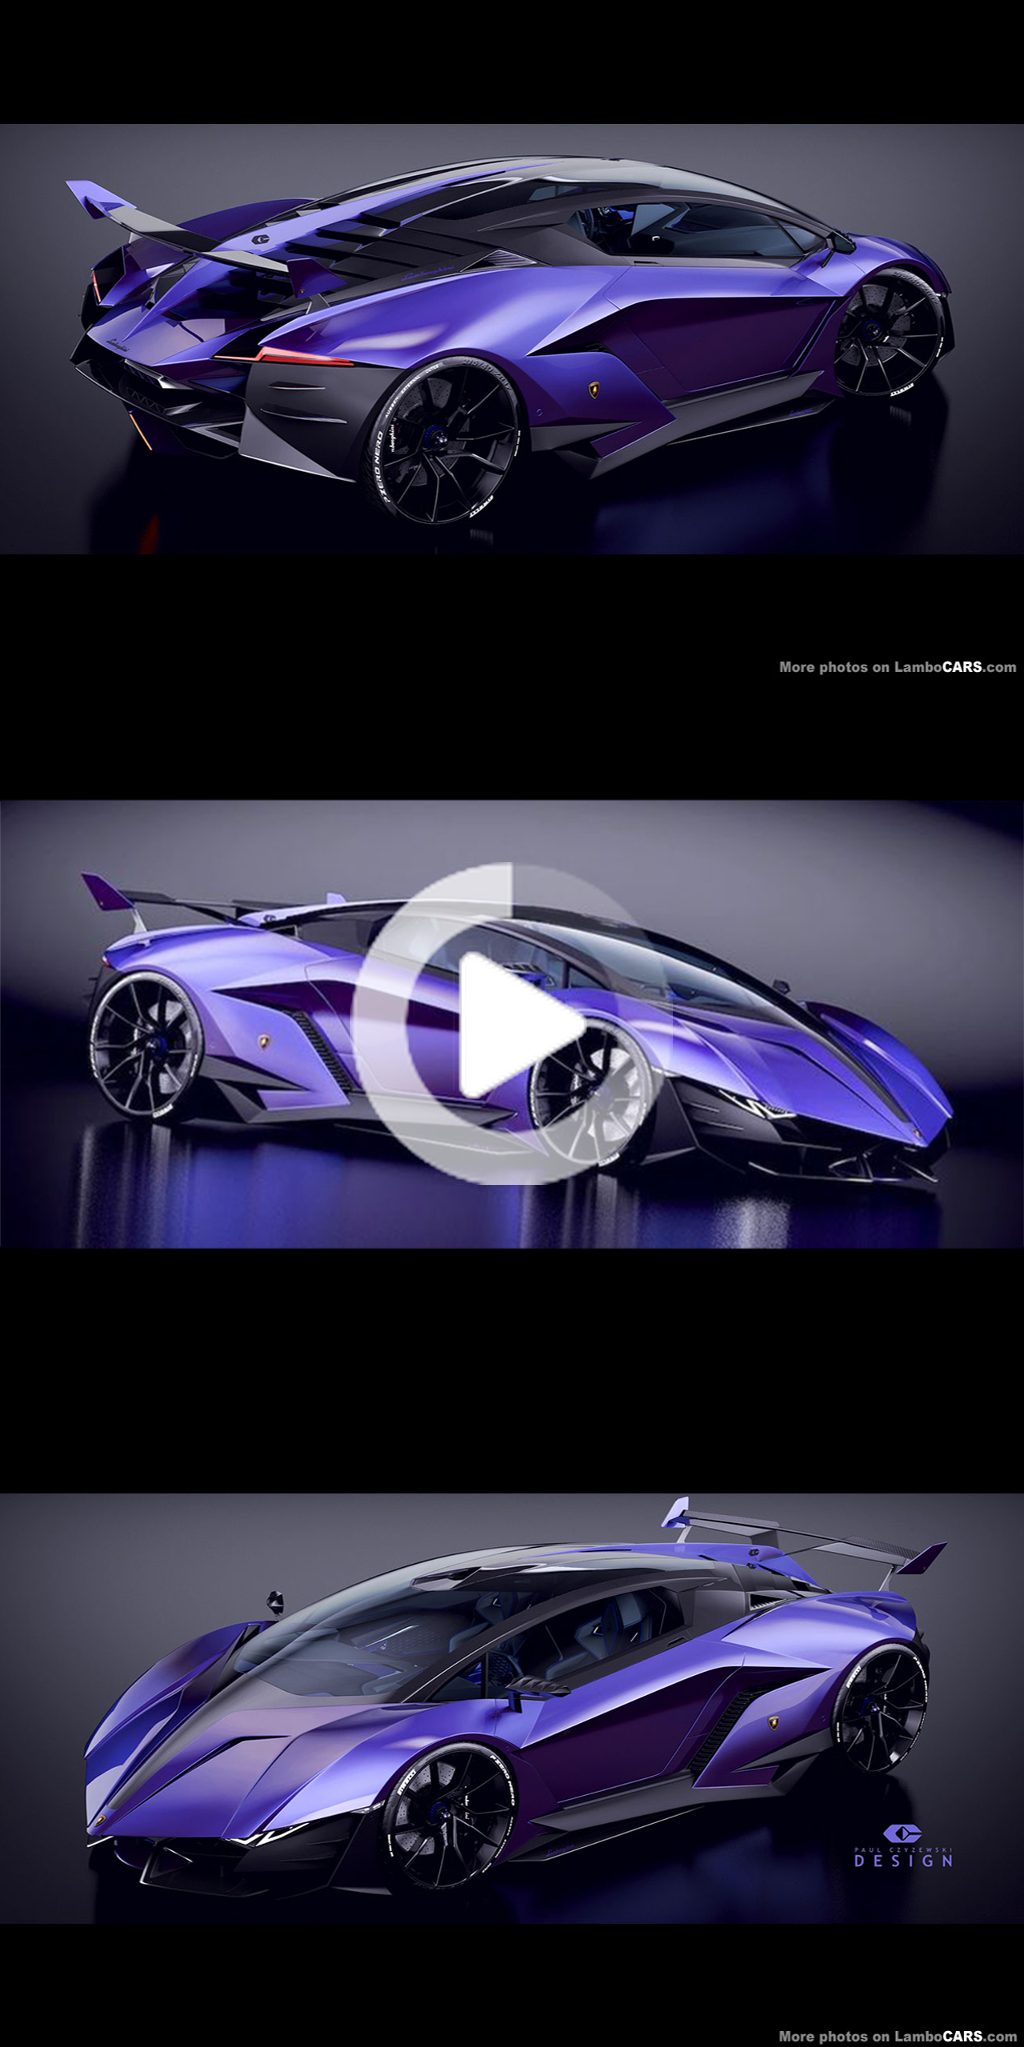 Leaving Facebook In 2020 Lamborghini Concept Lamborghini Cars Sports Cars Luxury